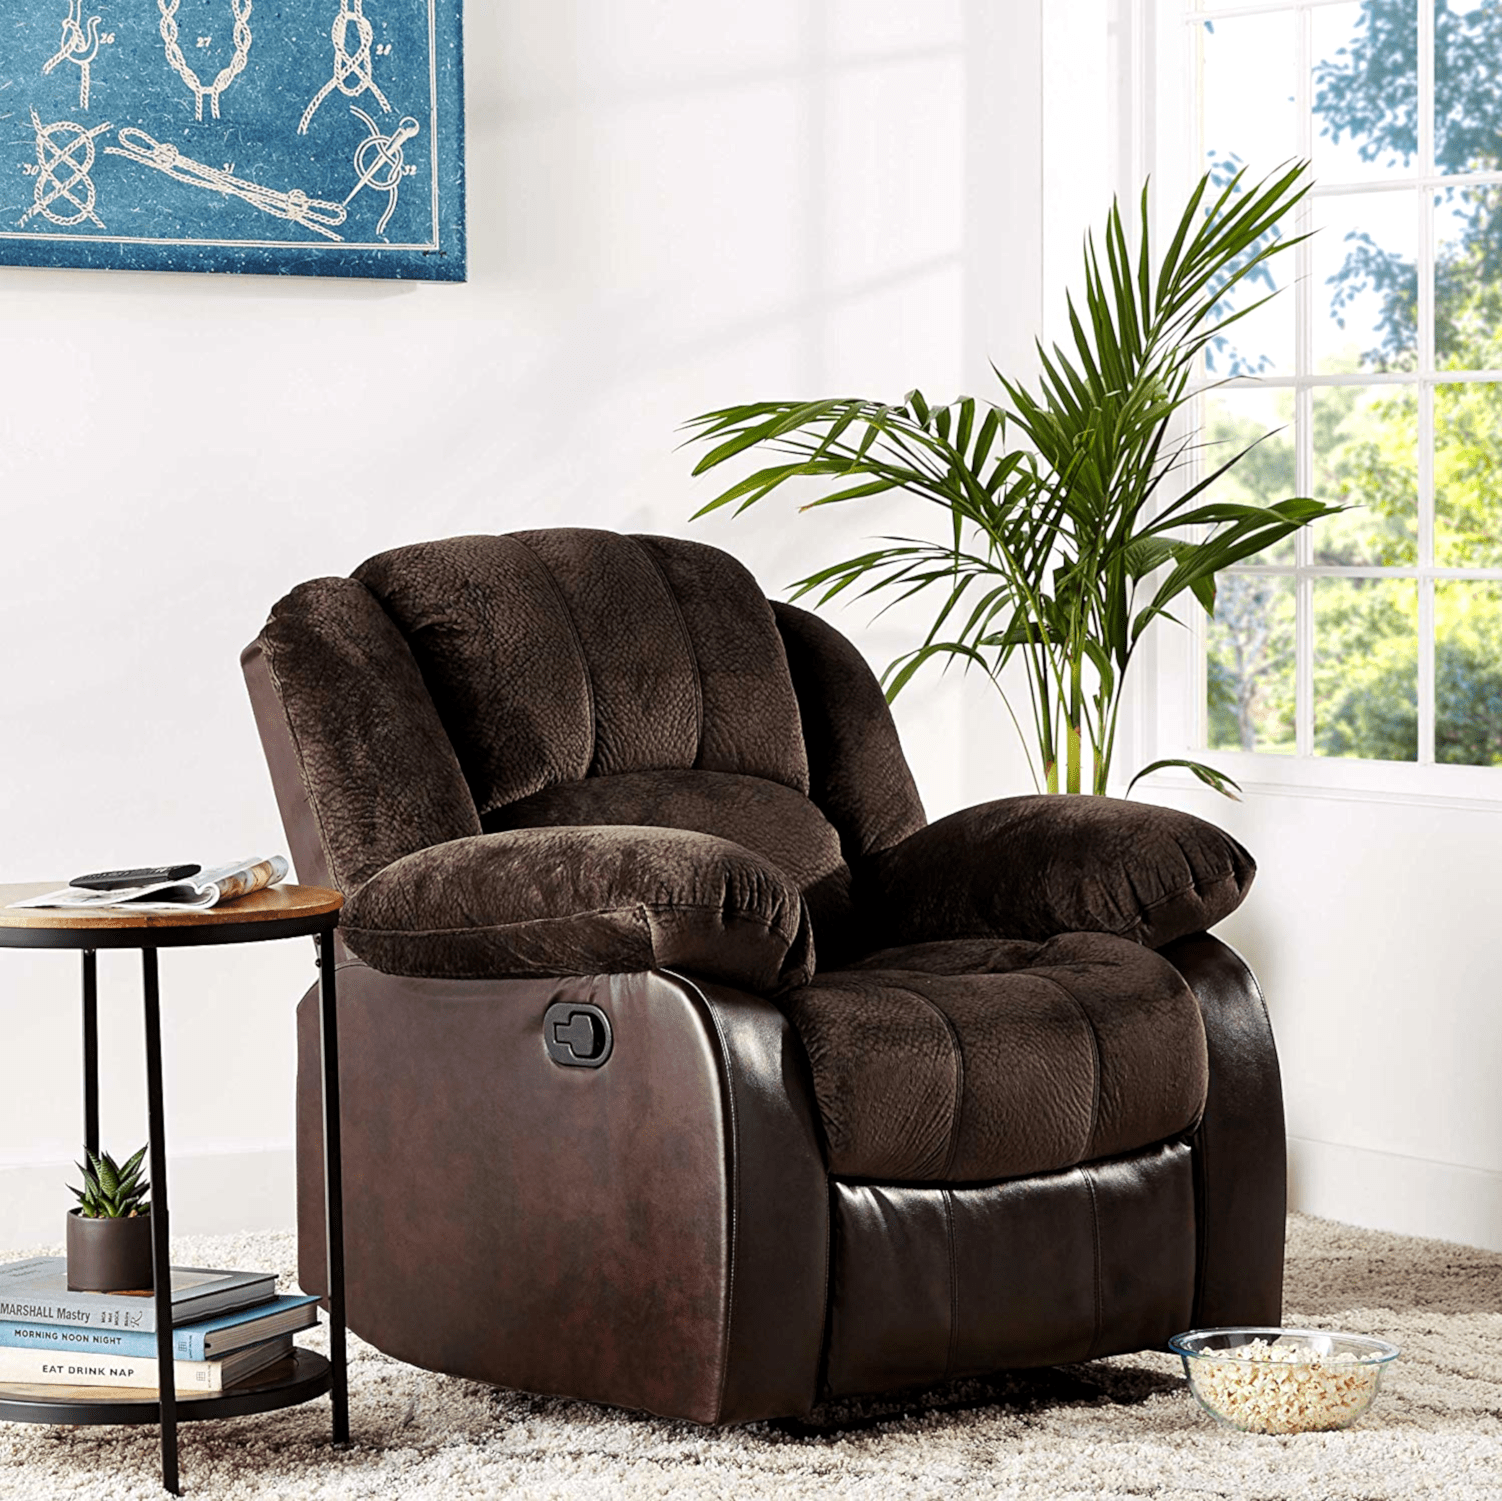 Top 10 Best Recliners for Big and Tall Men 2020 Reviews